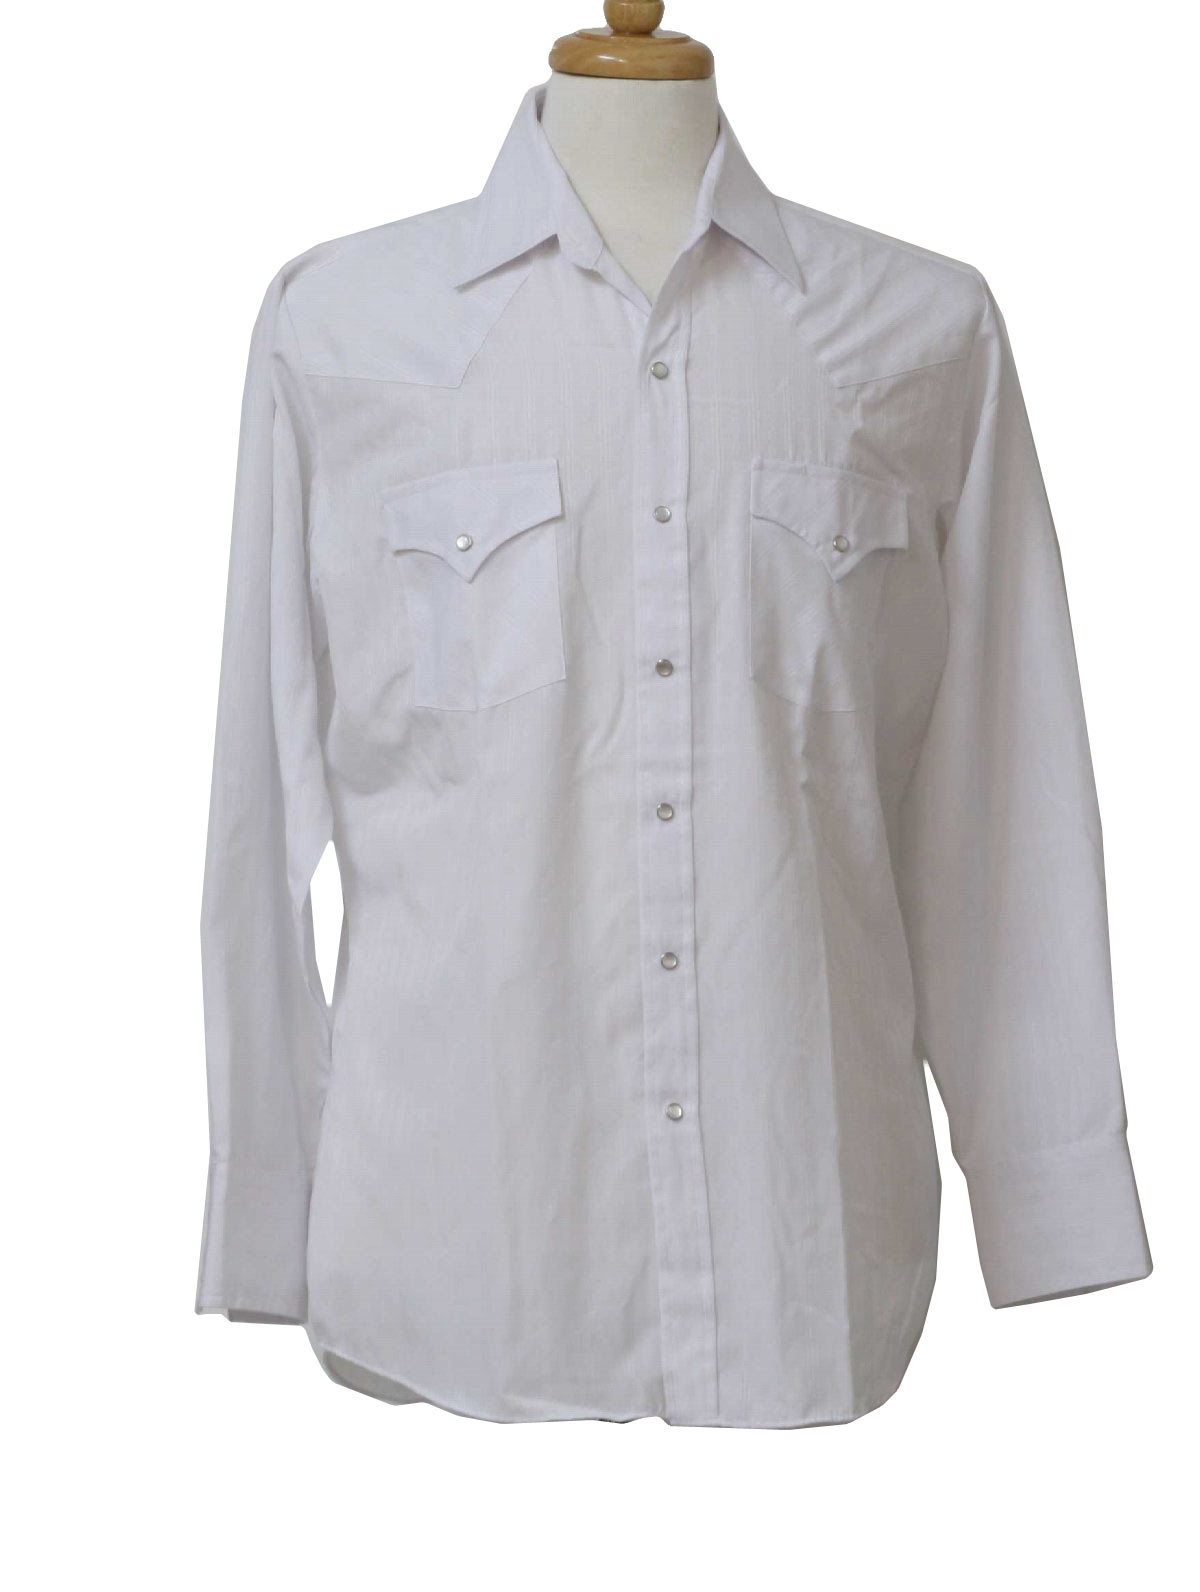 1980s Vintage Ely Western Shirt 80s Ely Mens Shaded Starch White